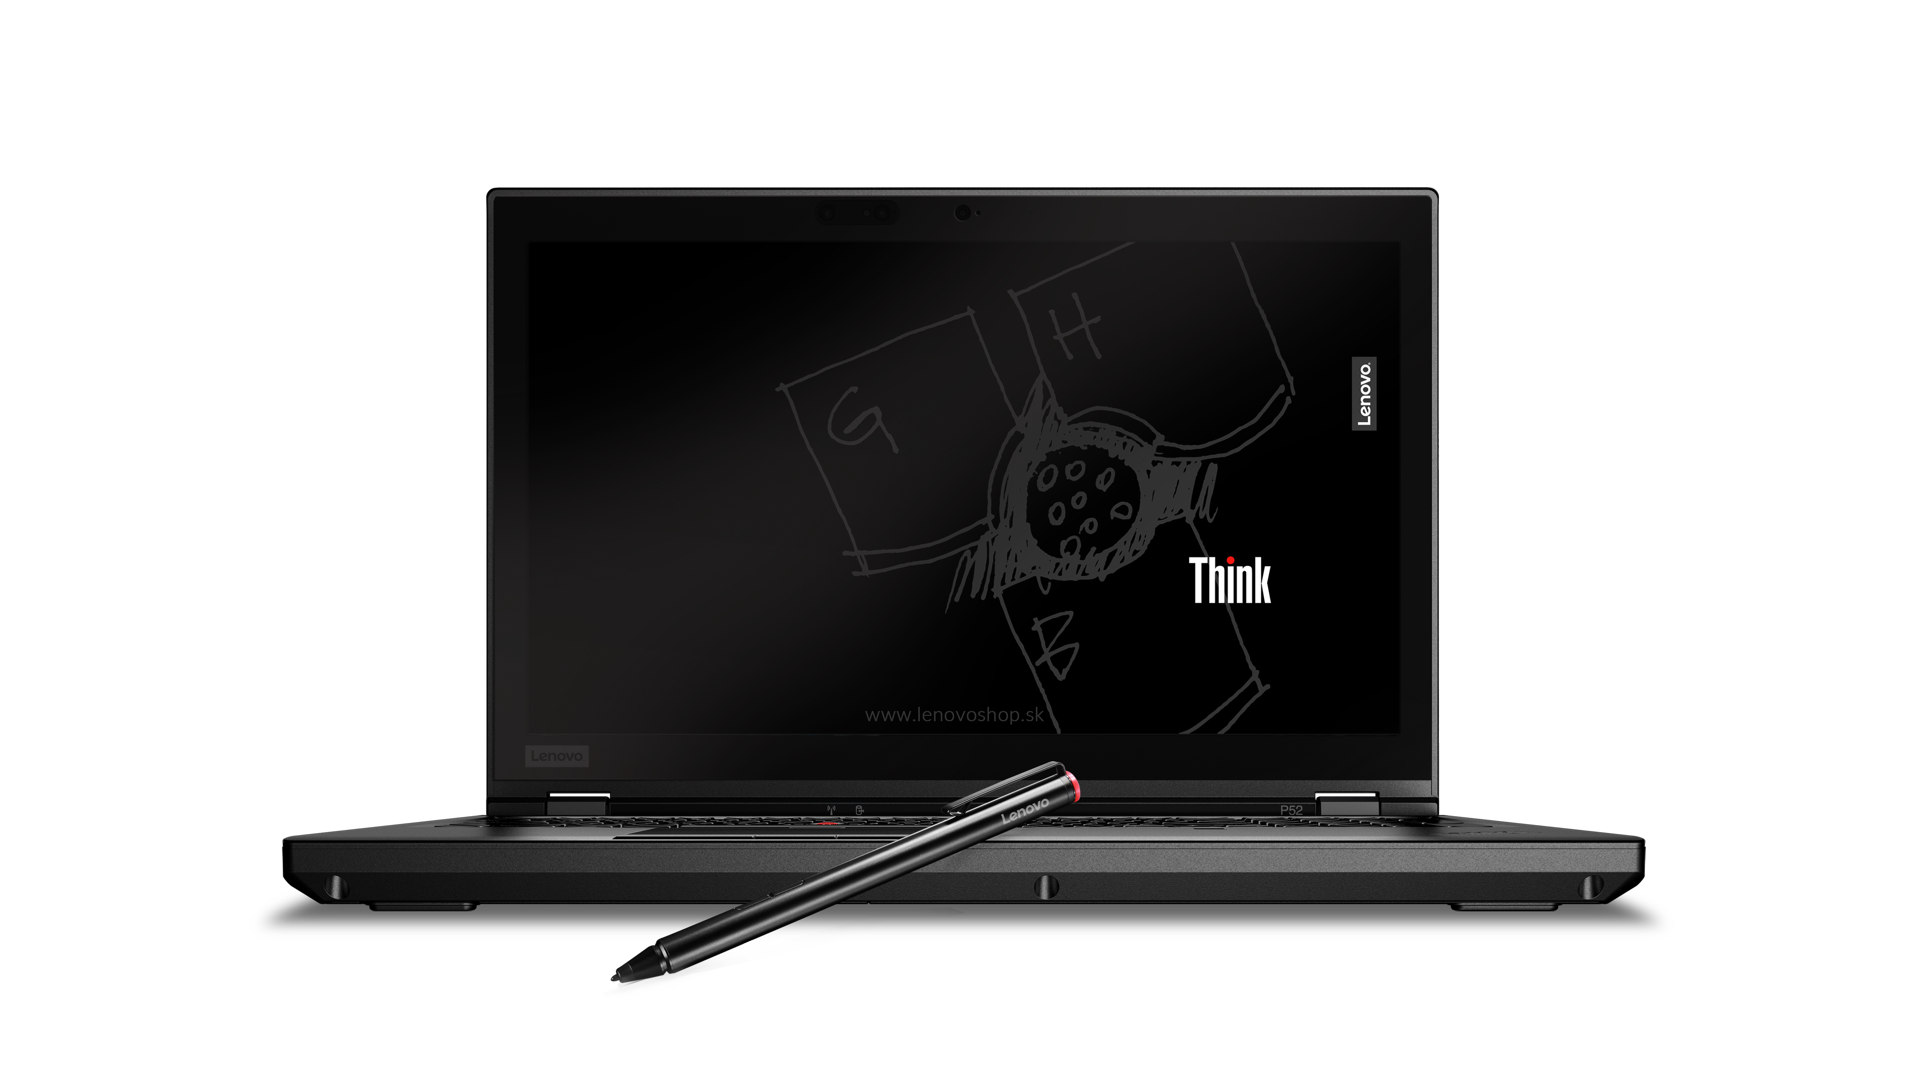 Thinkpad P52 UHD multi touch IRcam withPEN blksketchbckgrnd